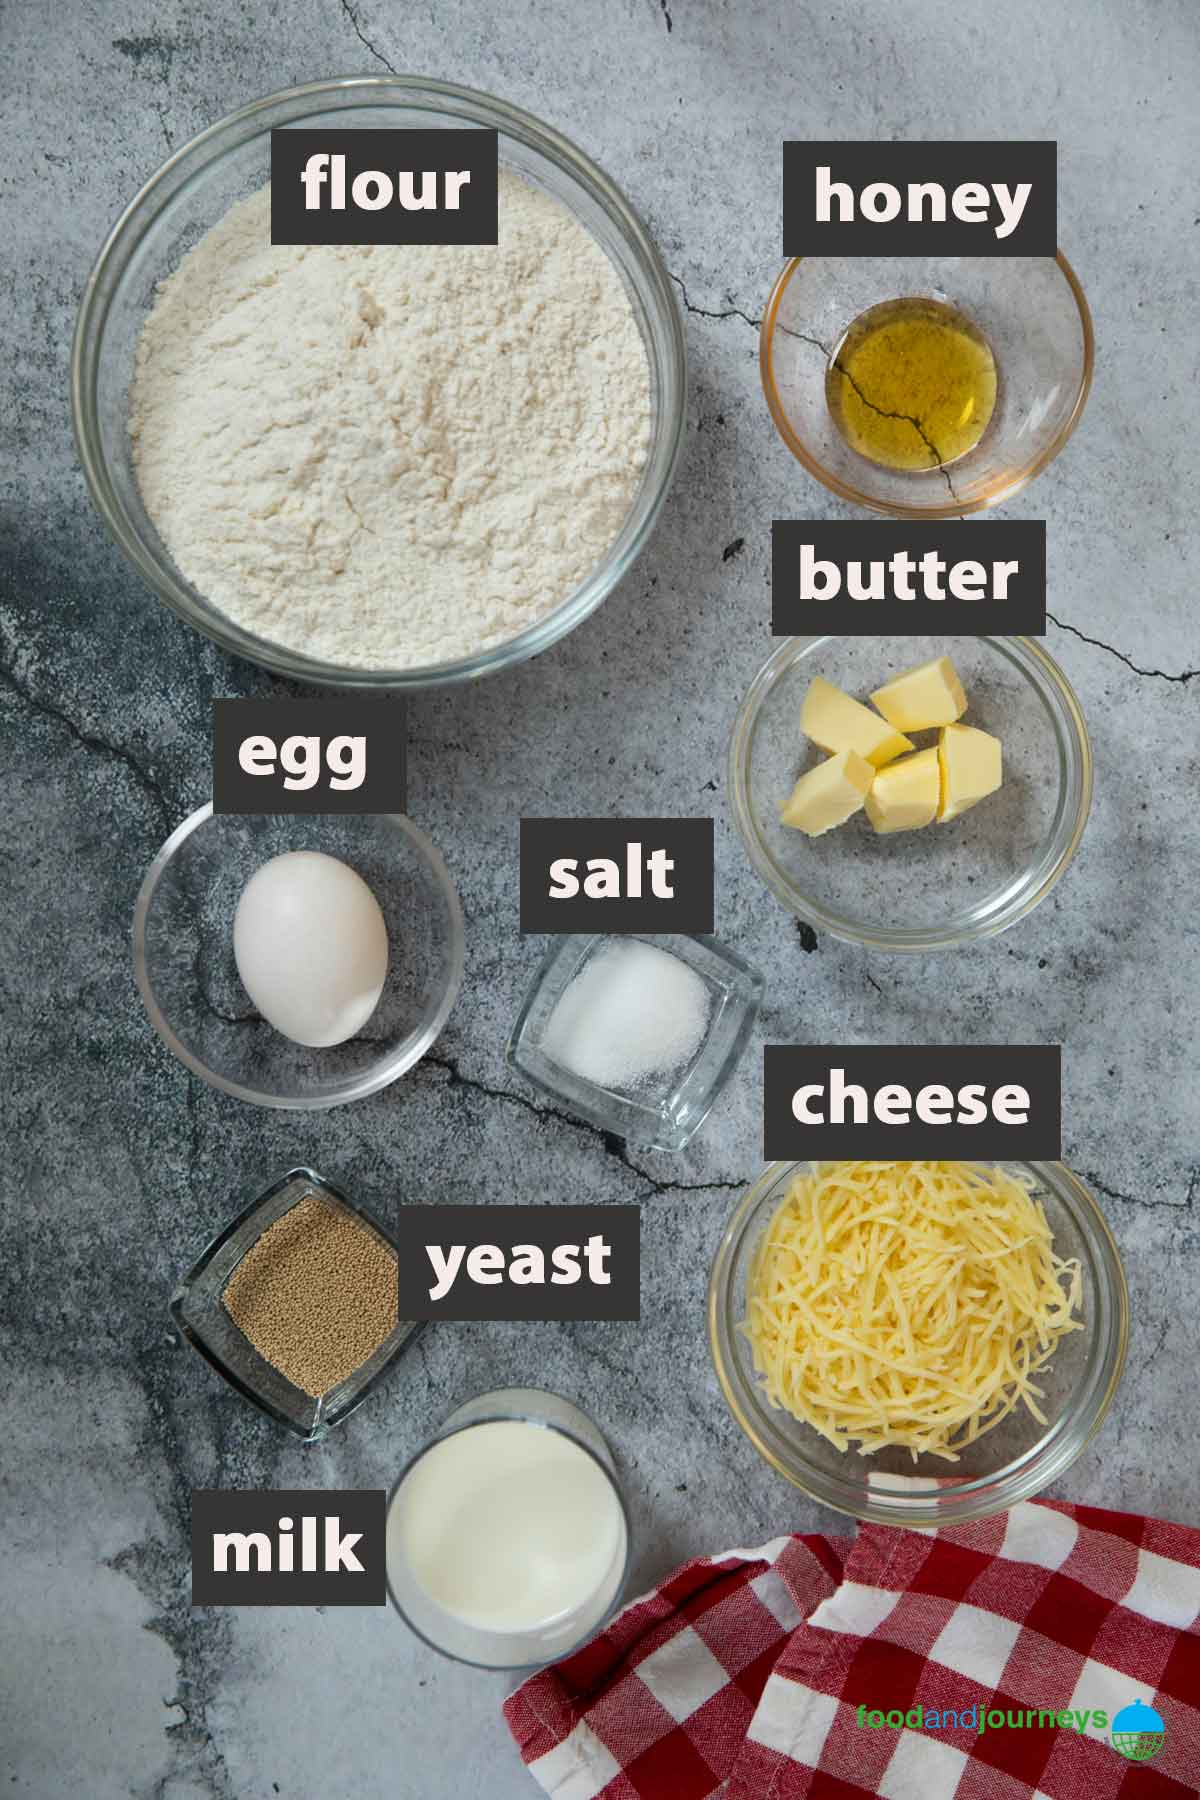 All the ingredients you need to have to make Swedish cheese buns at home.